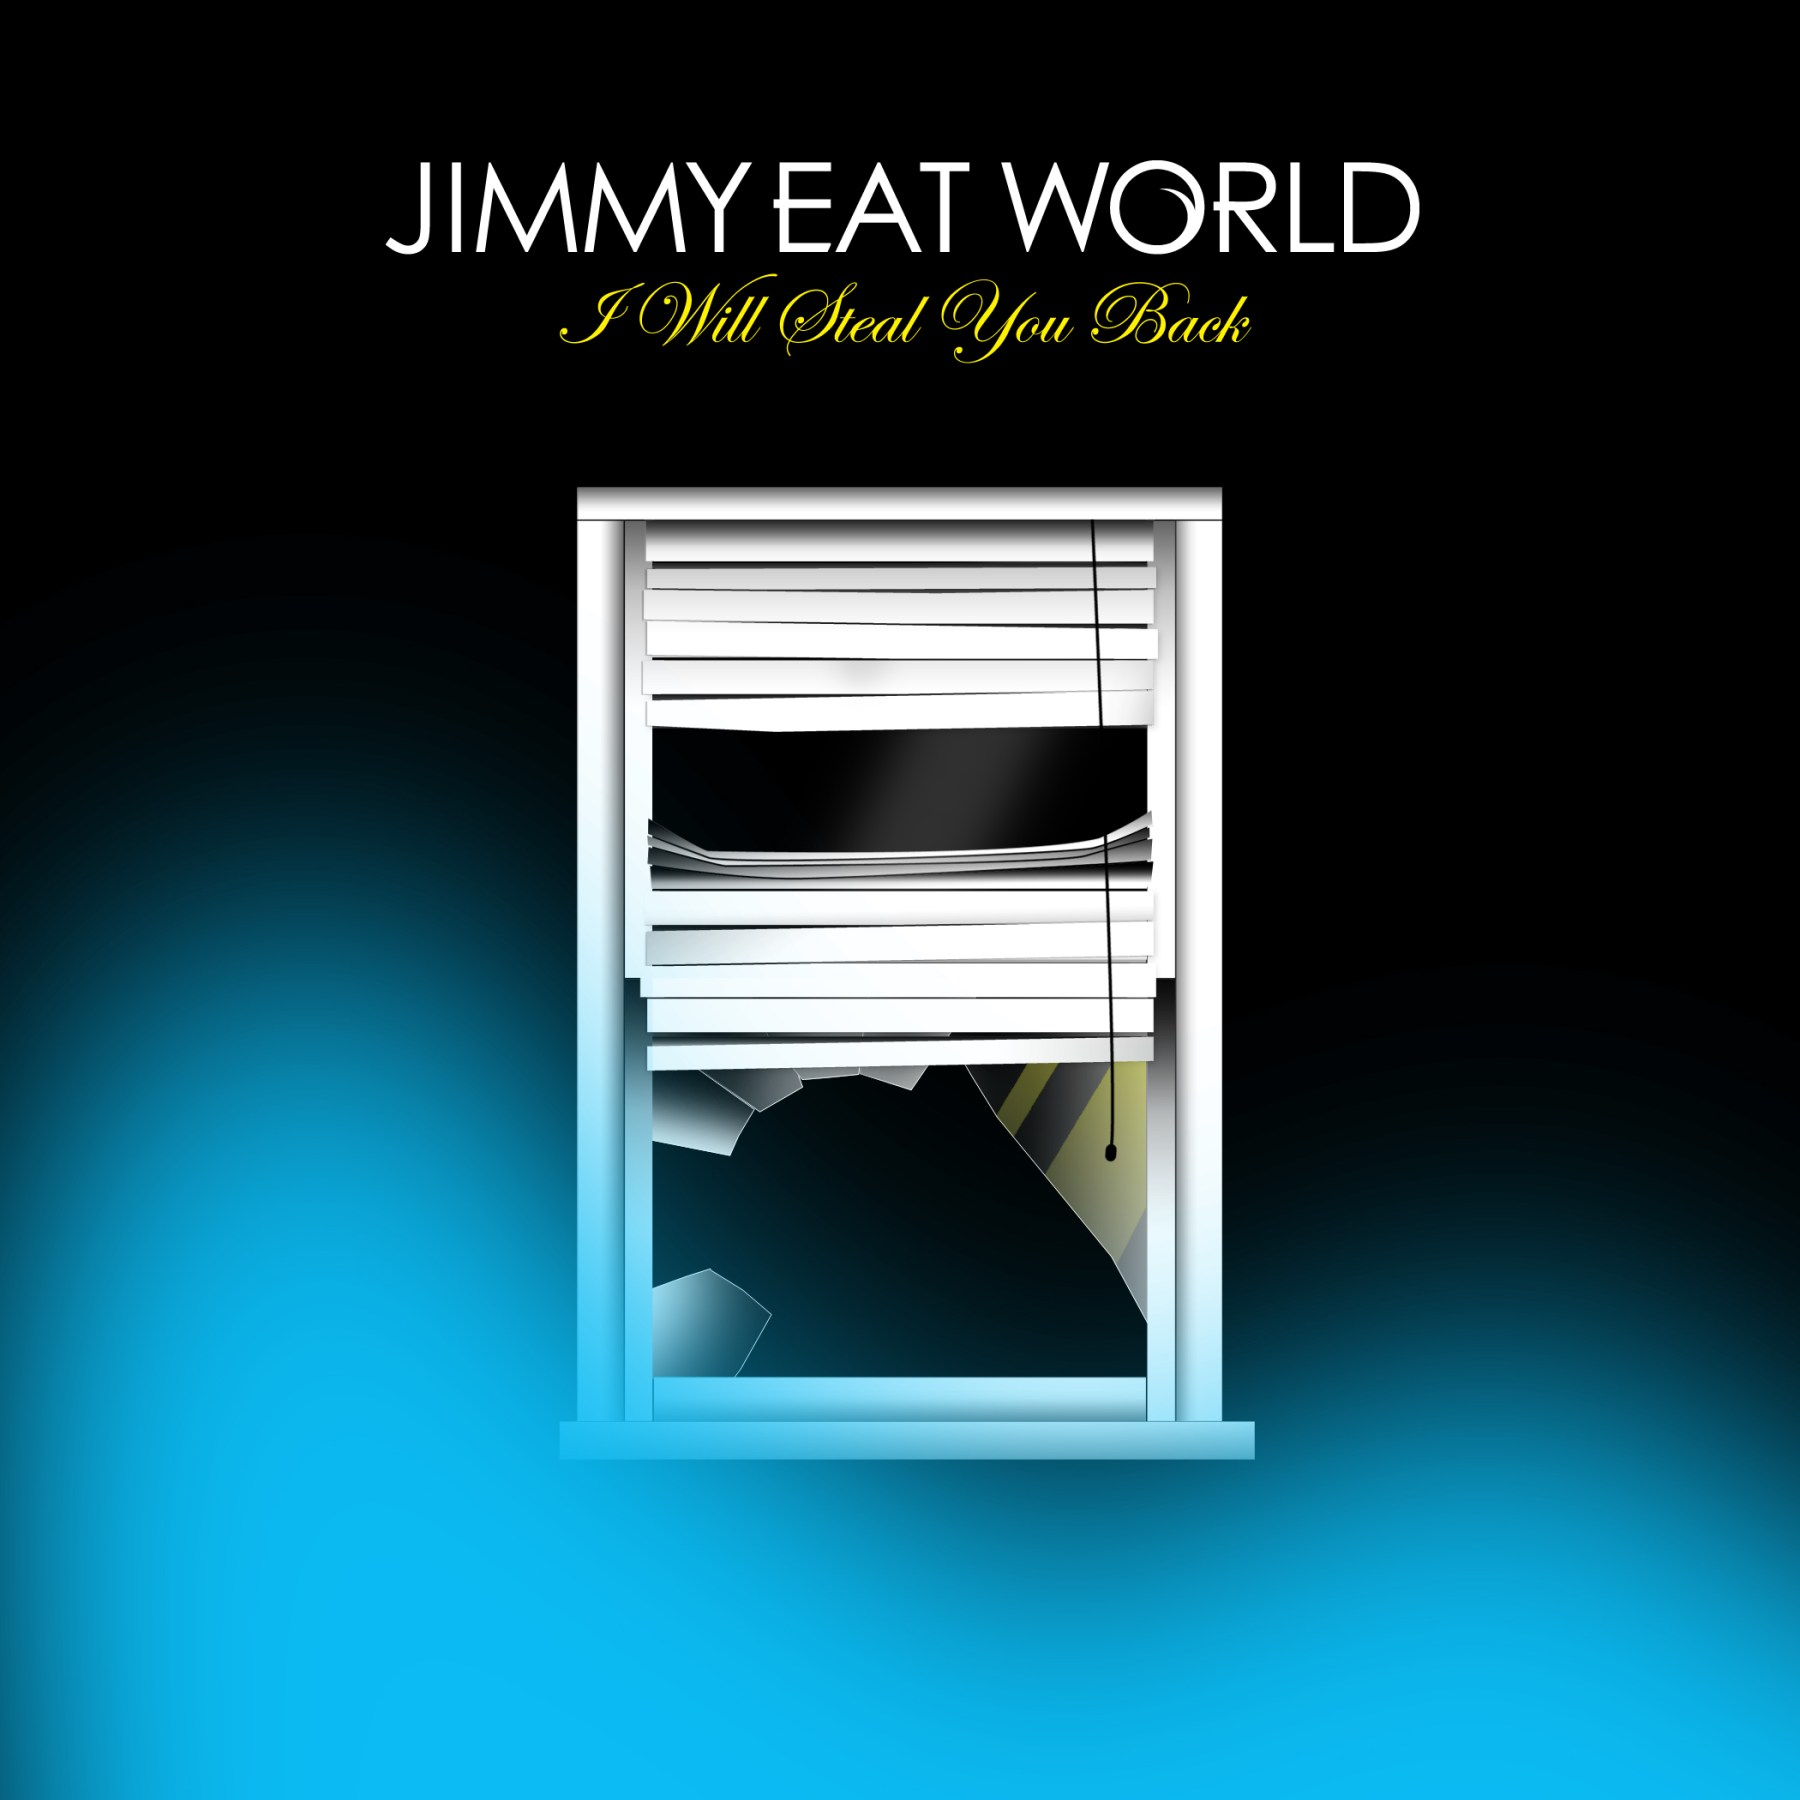 jimmy-eat-world-i-will-steal-you-back-single-cover